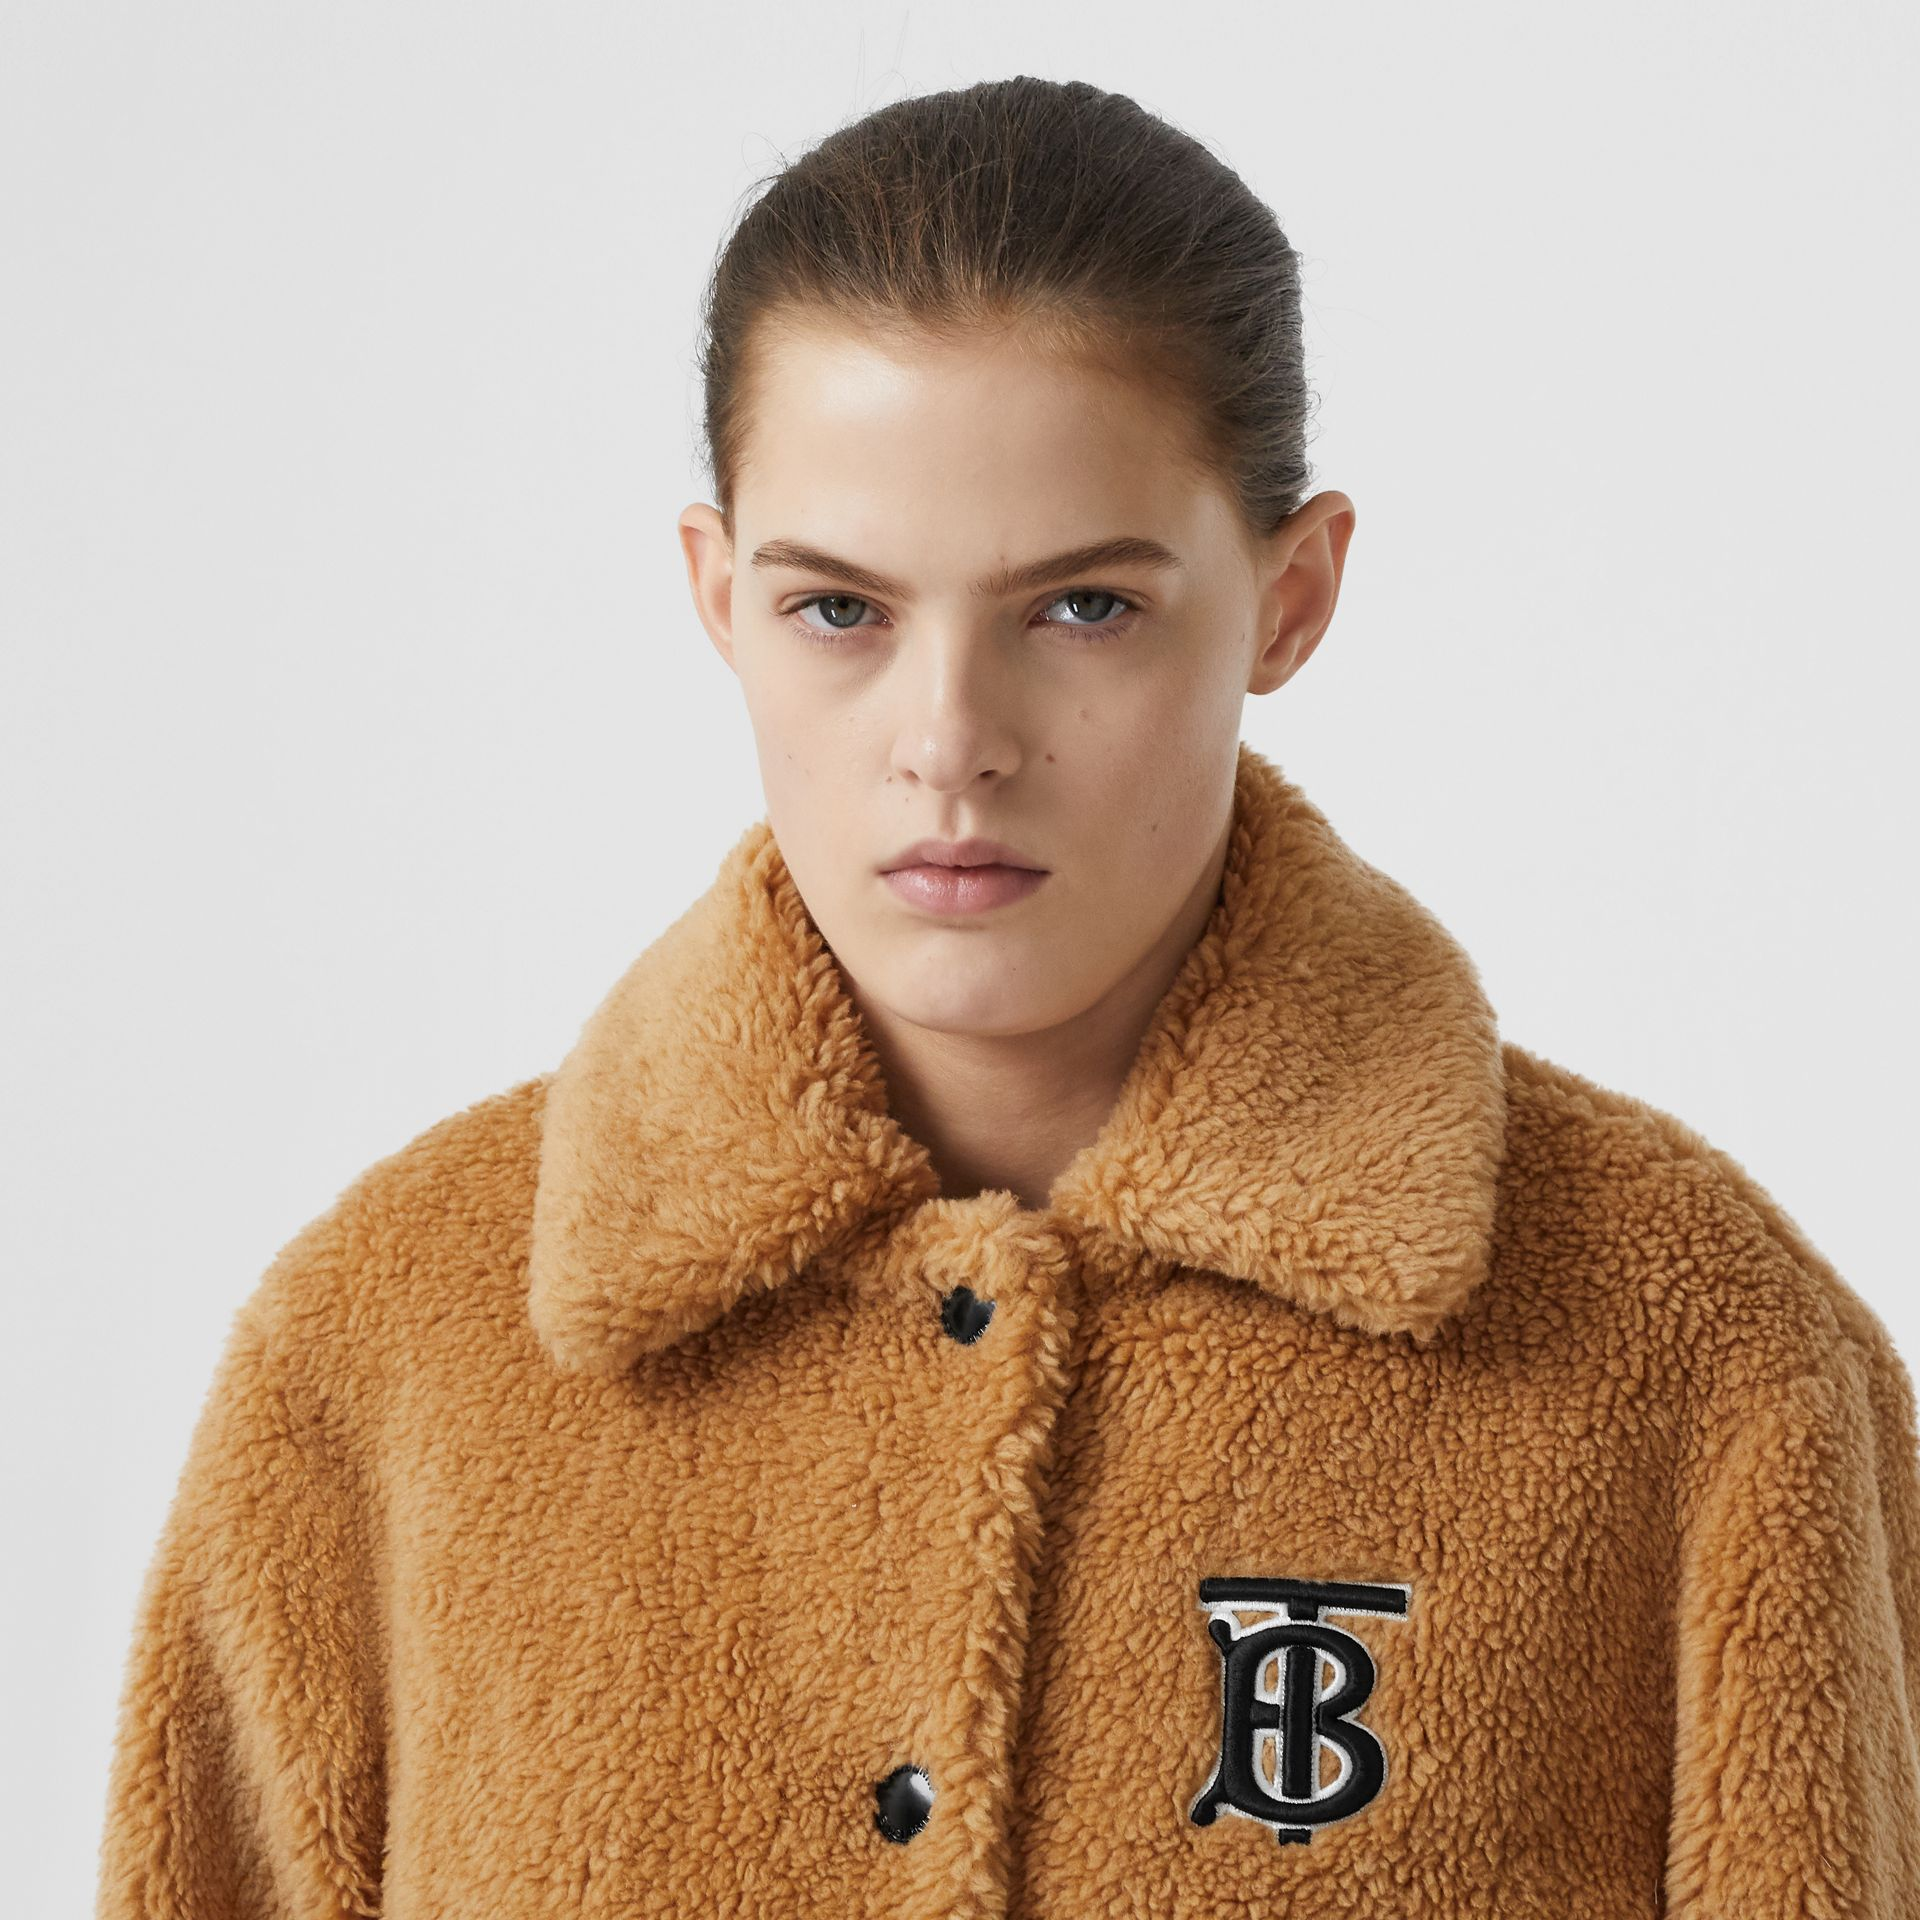 Monogram Motif Fleece Jacket in Camel - Women | Burberry - gallery image 1